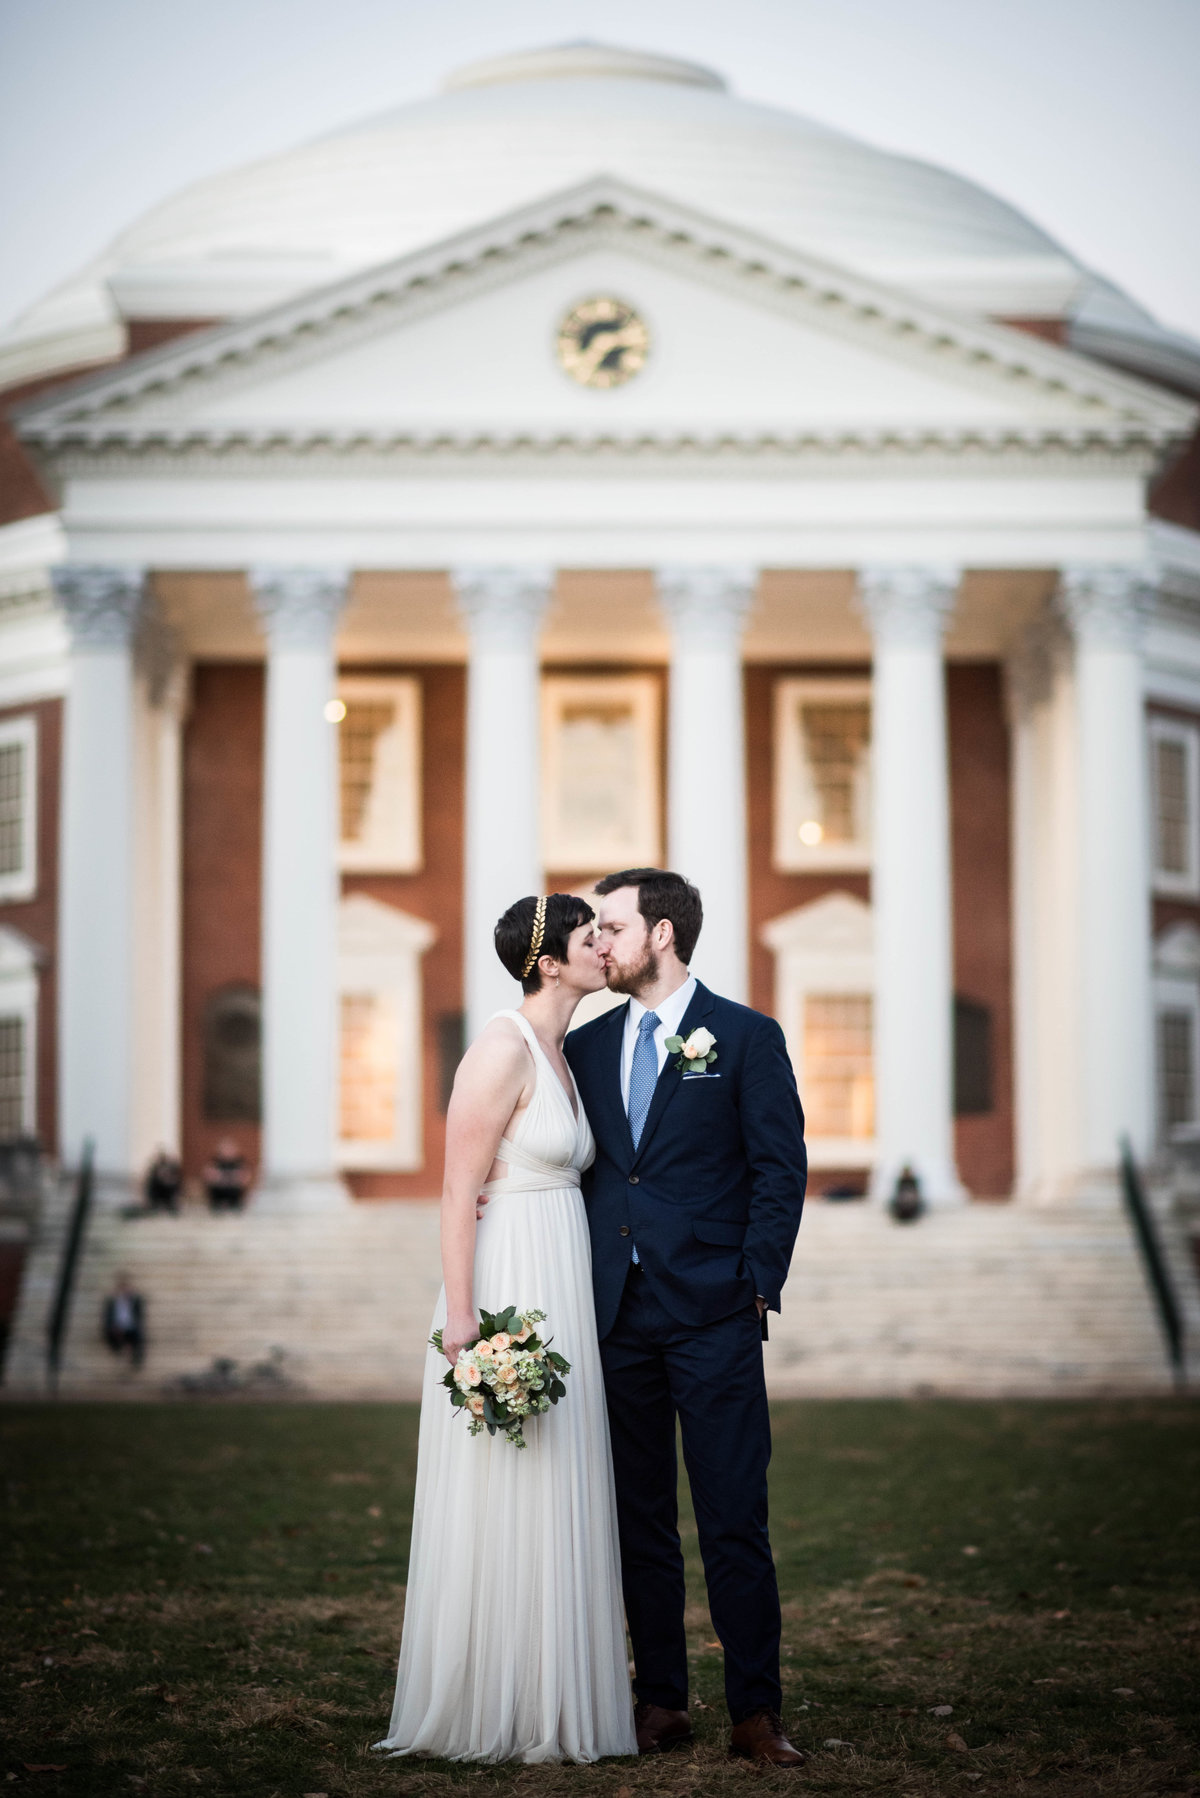 Bride and groom kiss on campus quad, Charlottesville VA.